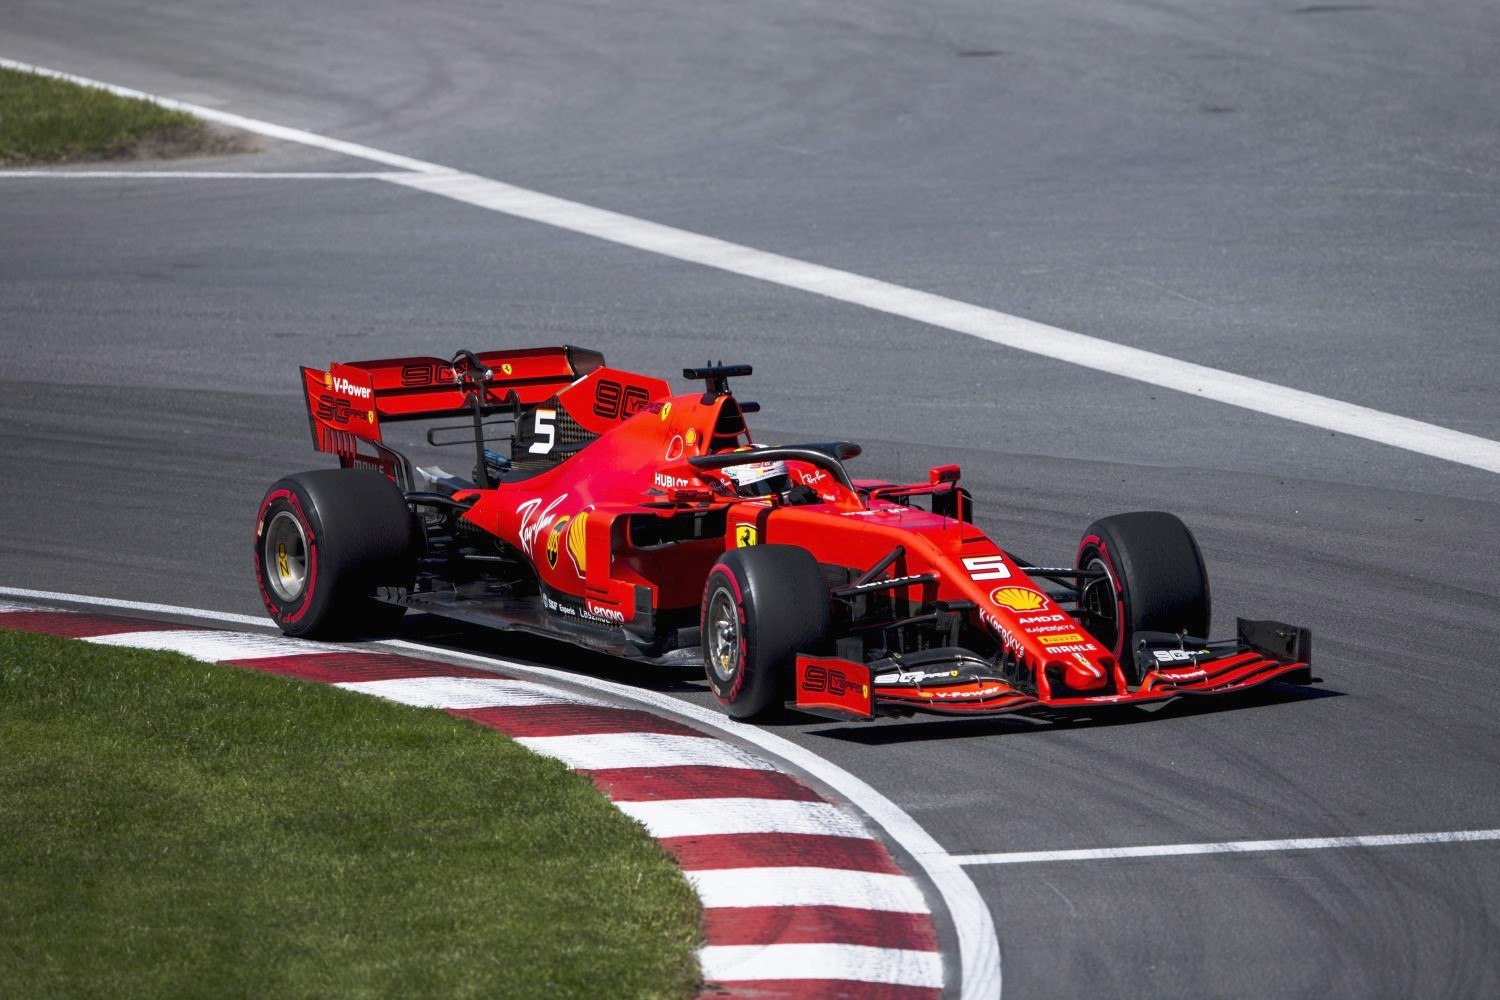 Sebastian Vettel gave the Ferrari fans something to cheer about with a rare pole for the Scuderia